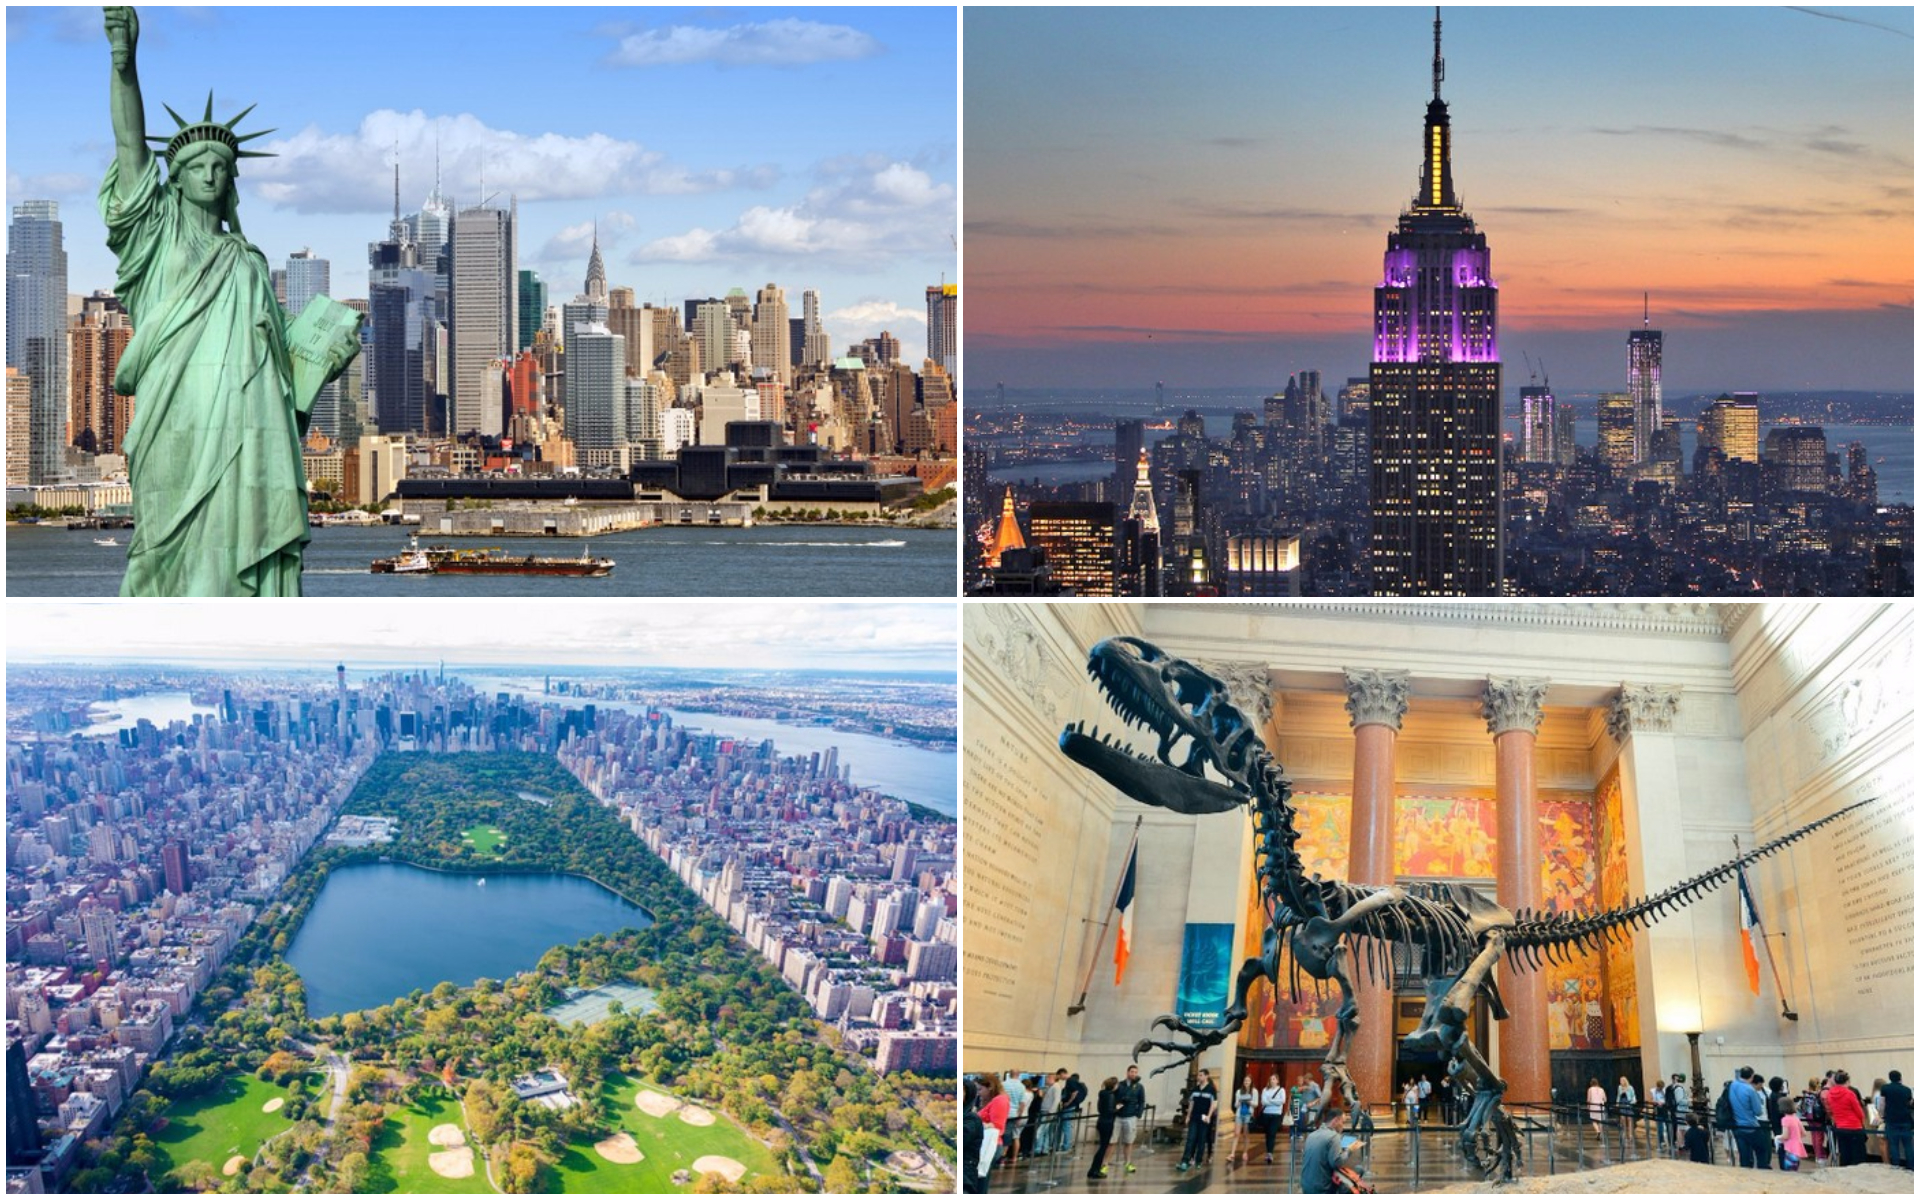 Top 10 most popular new york city attractions page 3 for Attractions in new york new york